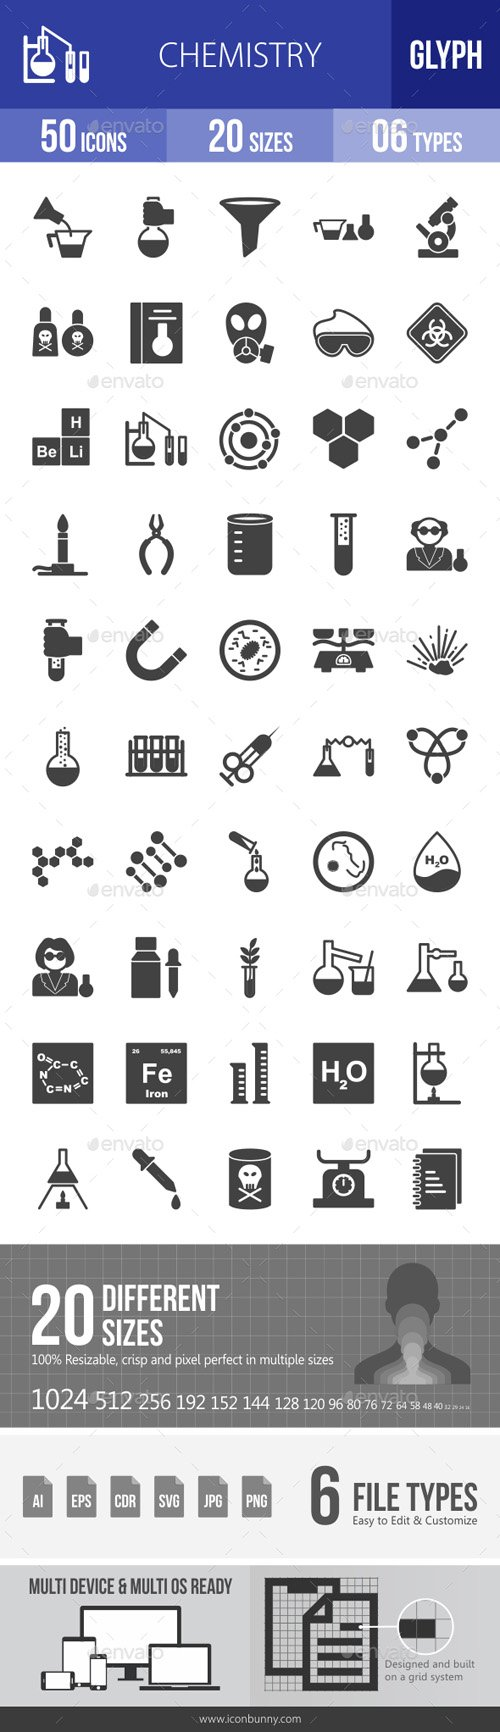 Chemistry Glyph Icons 18027290